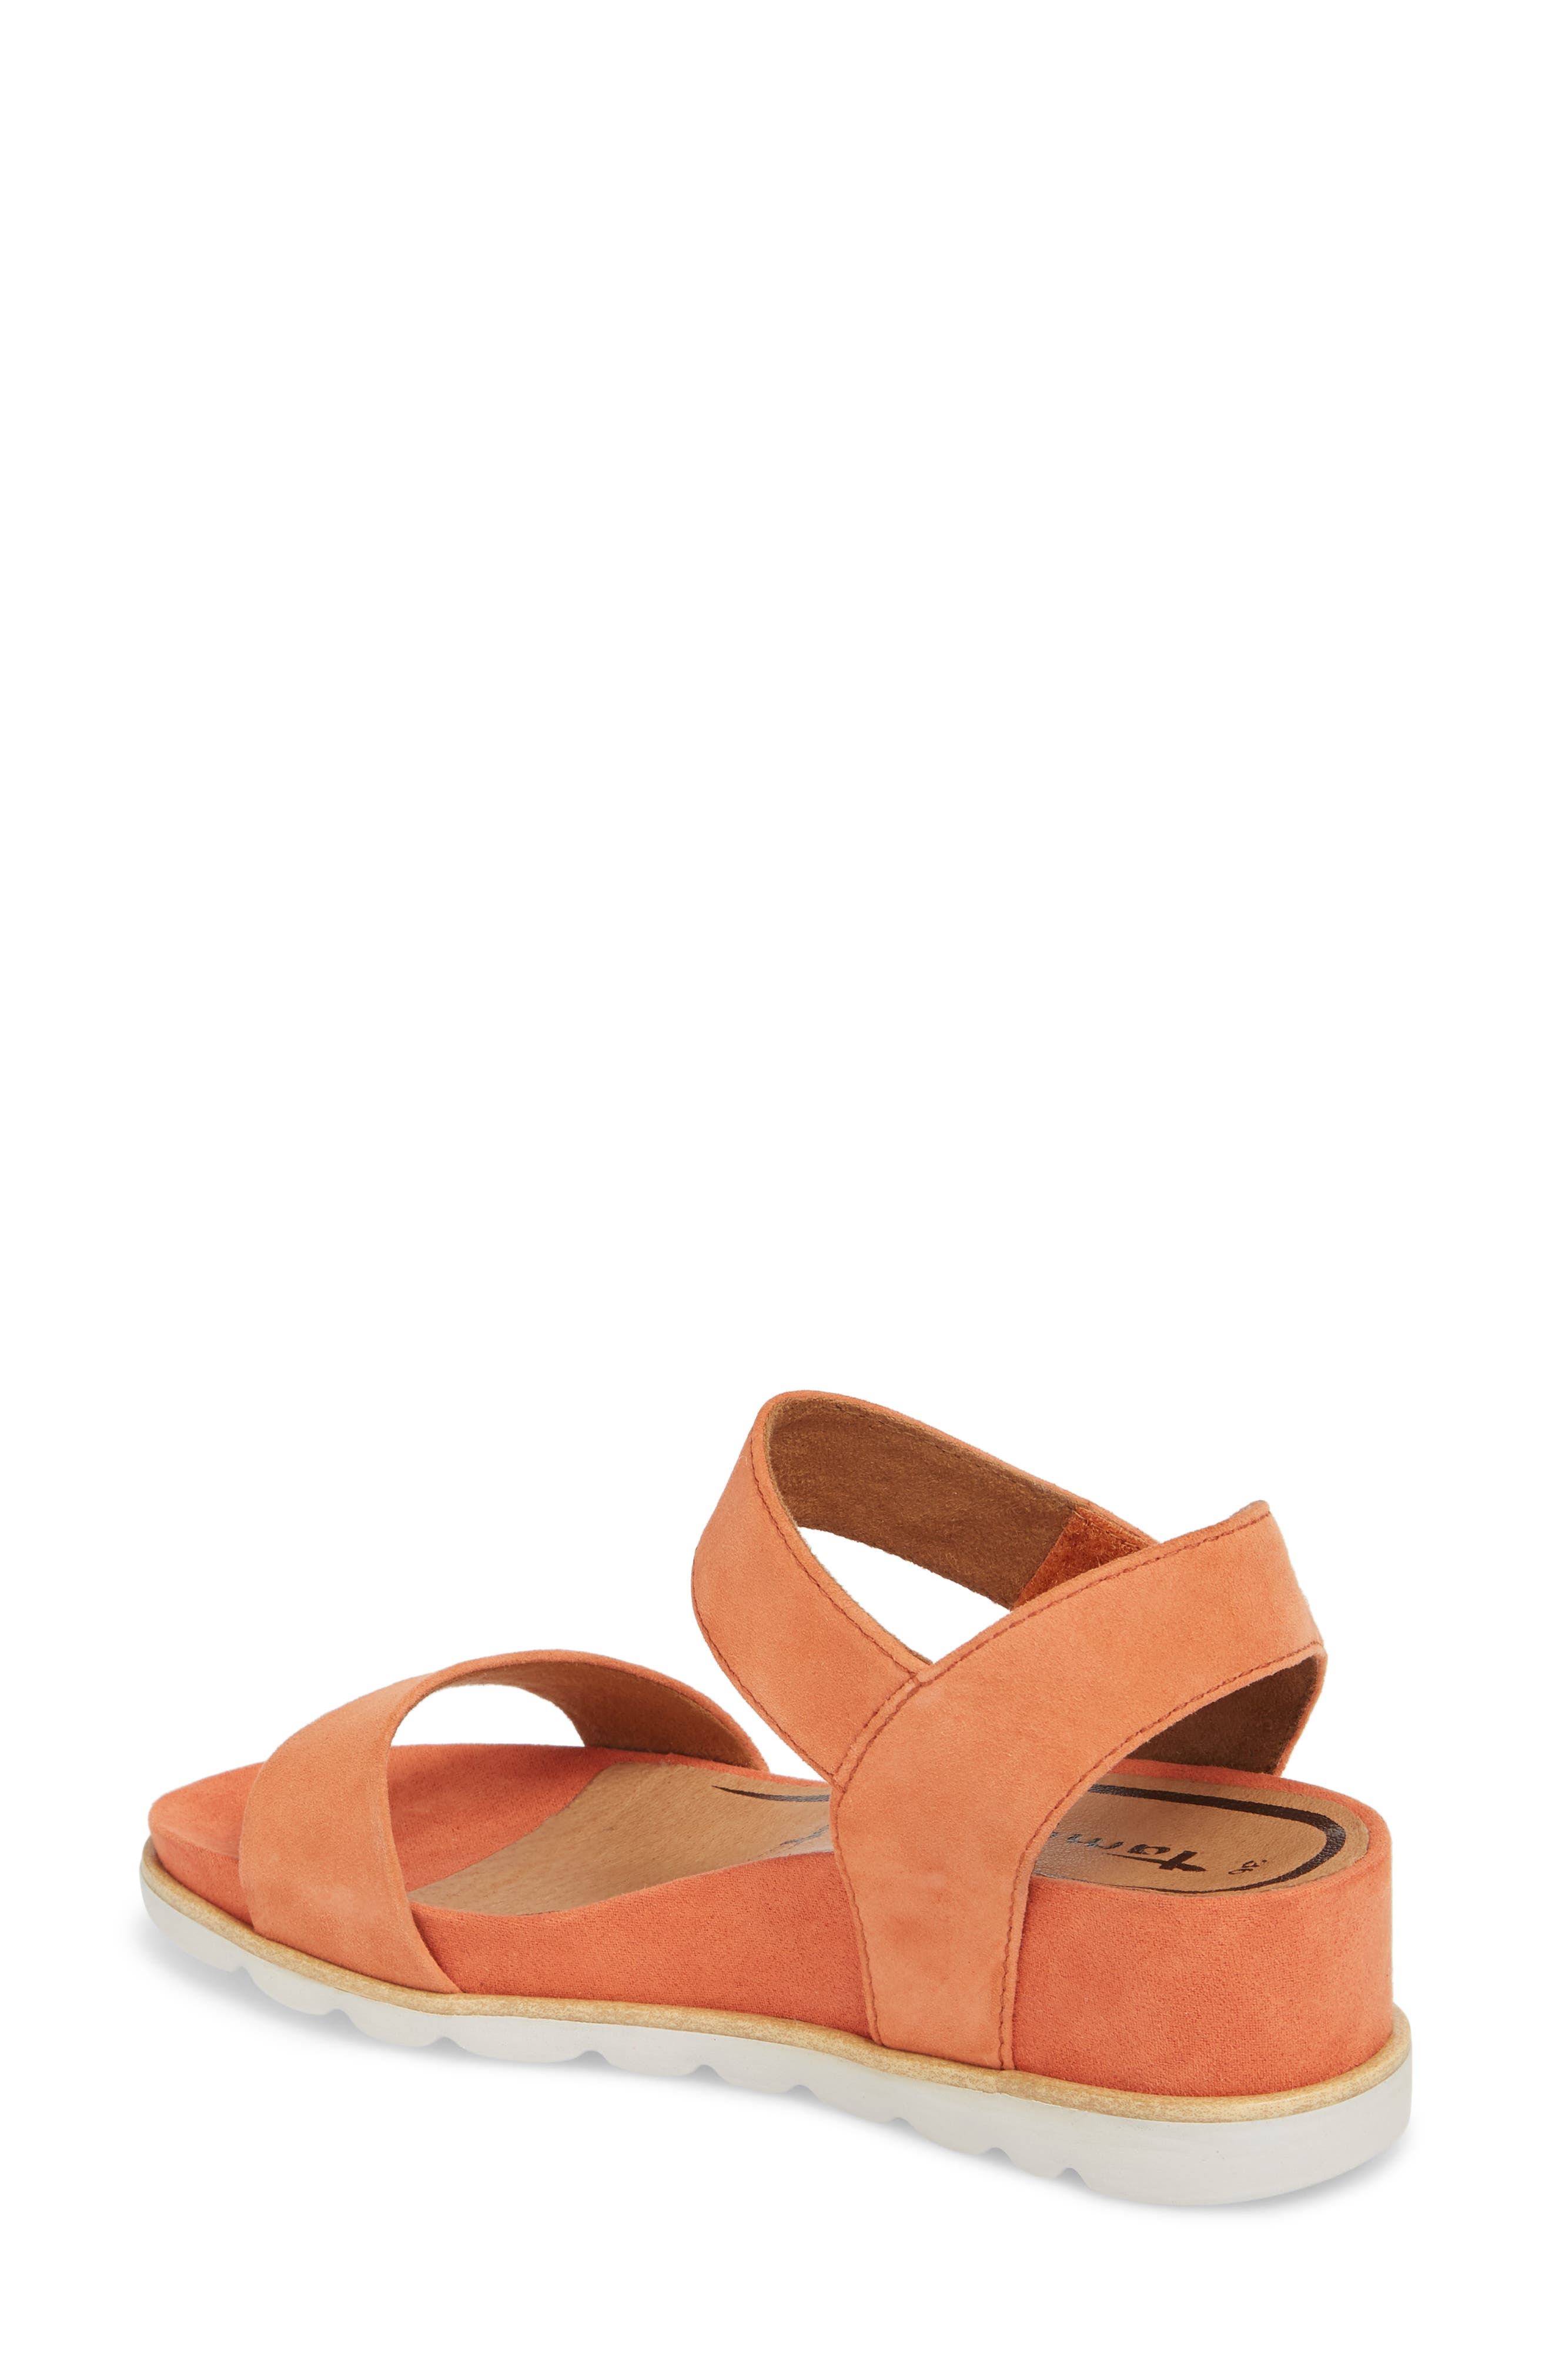 Cory Wedge Sandal,                             Alternate thumbnail 6, color,